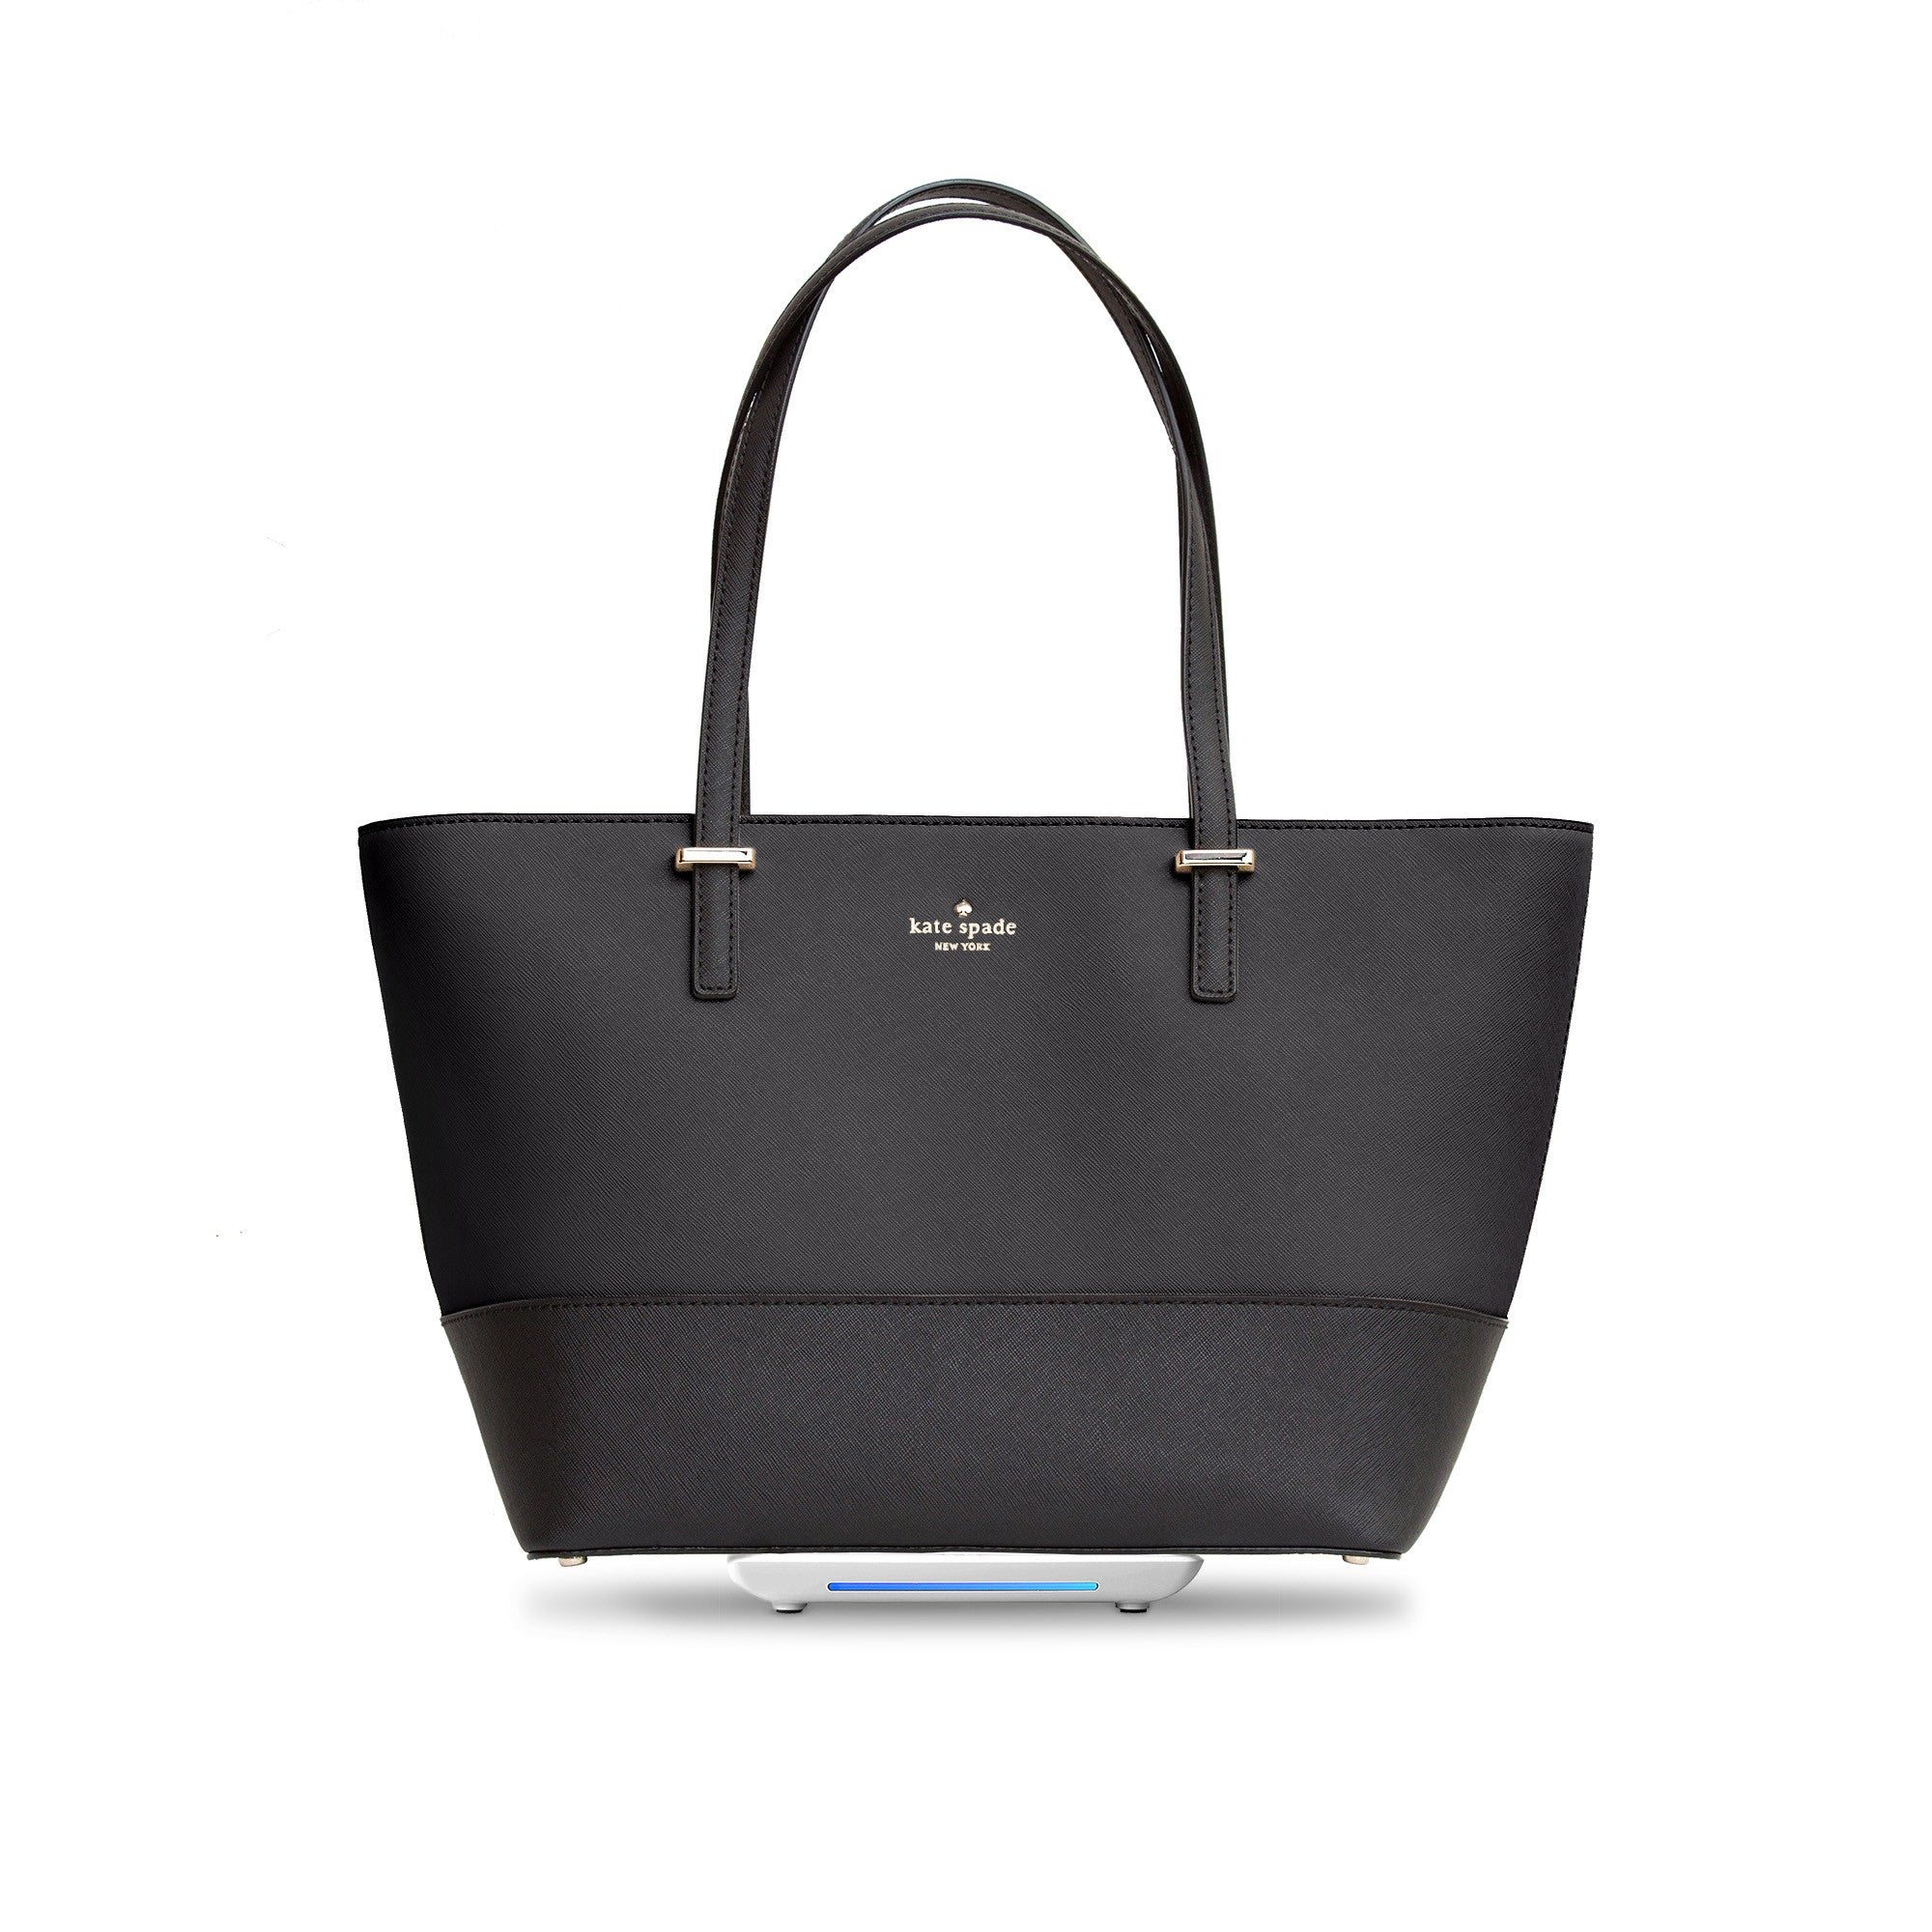 Everpurse Kate Spade Small Harmony Black iPhone Charging Tote Front View on Top of Everpurse Charging Mat